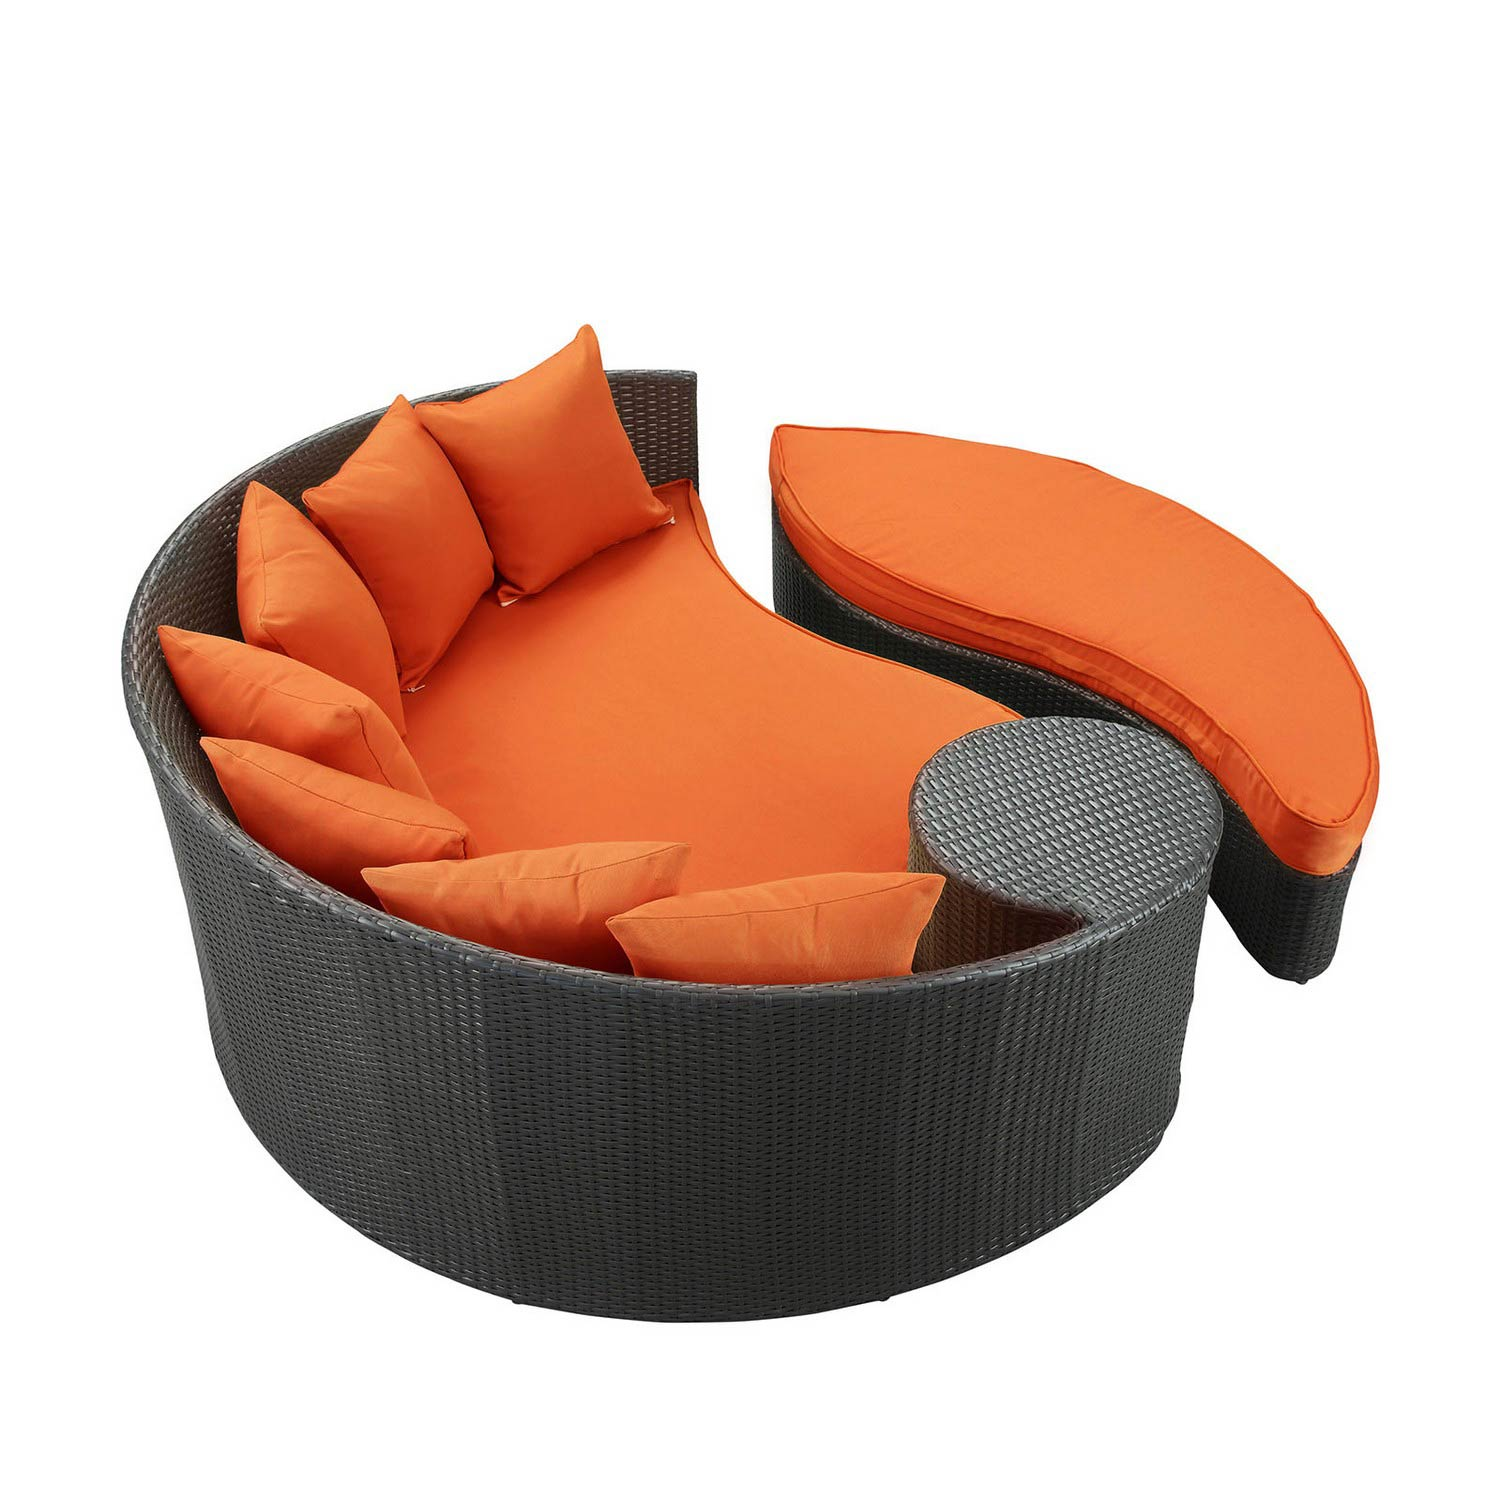 Modway Taiji Outdoor Patio Daybed - Espresso/Orange